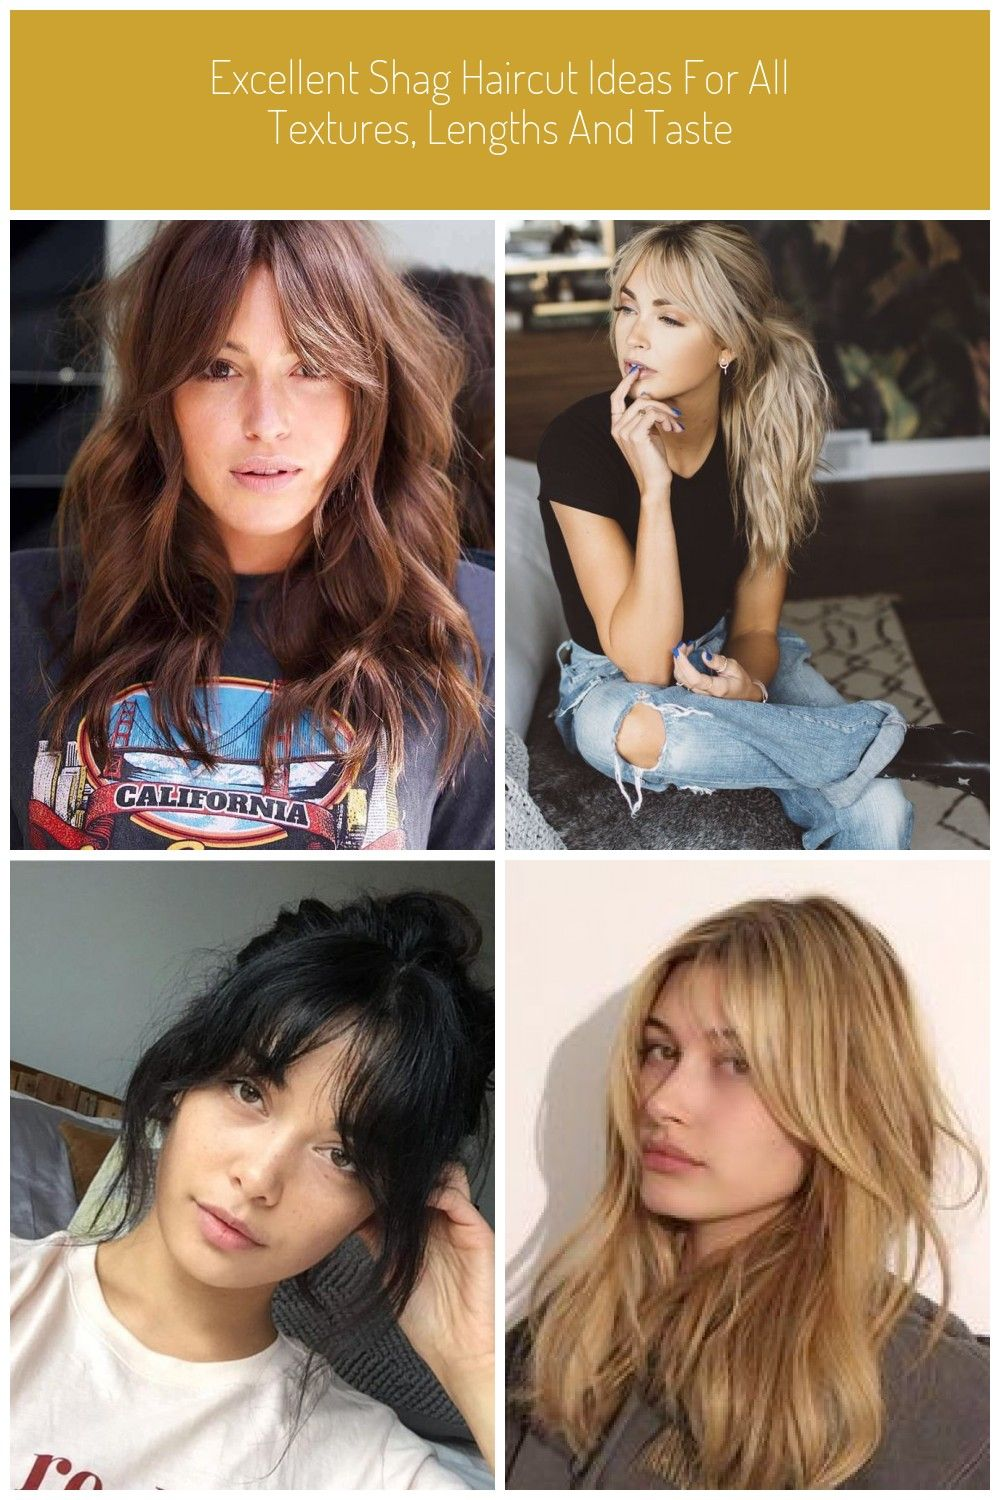 EXCELLENT SHAG HAIRCUT IDEAS FOR ALL TEXTURES LENGTHS AND TASTE bangs EXCELLENT SHAG HAIRCUT IDEAS FOR ALL TEXTURES LENGTHS AND TASTE